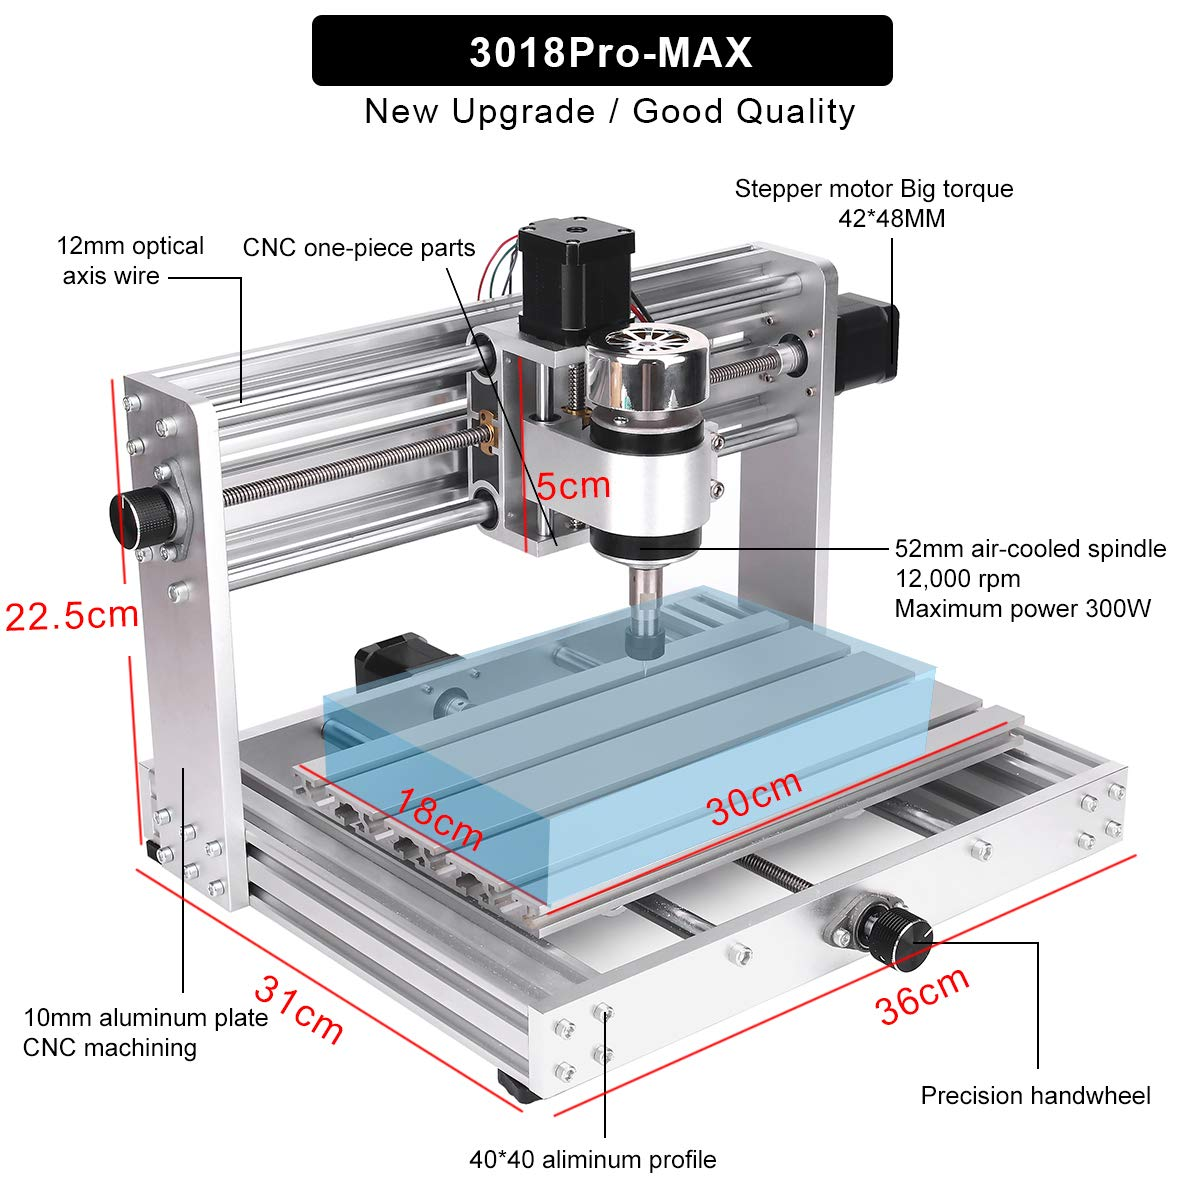 Wood Router Engraver with Offline Controller with ER11 and 5mm Extension Rod MYSWEETY CNC 3018Pro MAX Engraver with 200W Spindle 3 Axis Pcb Milling Machine GRBL control DIY CNC machine